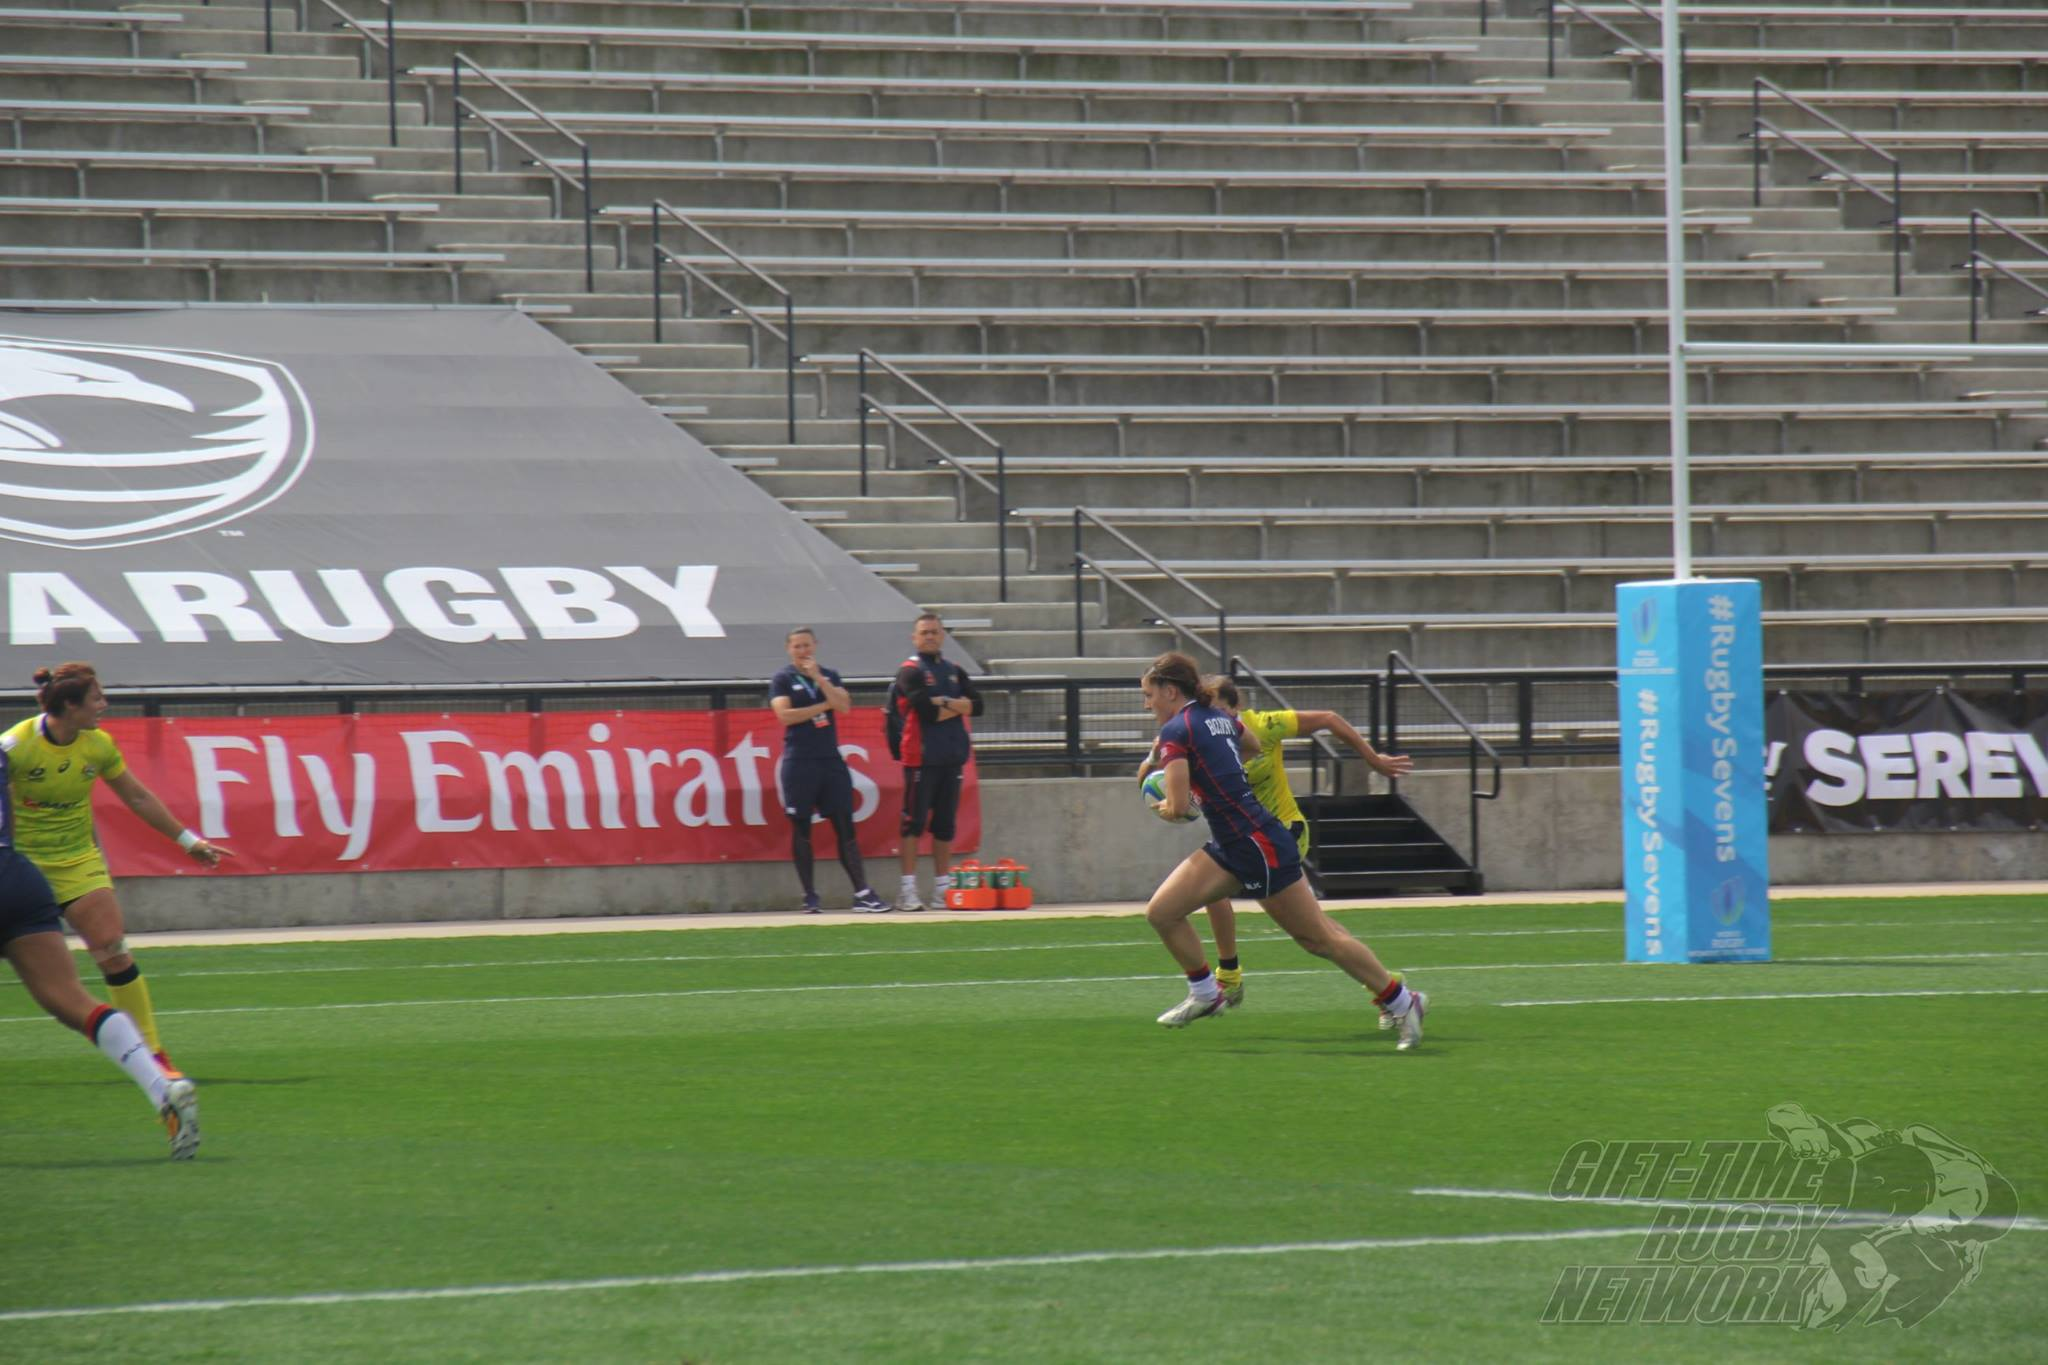 Bonny looks to find the try zone against Australia.